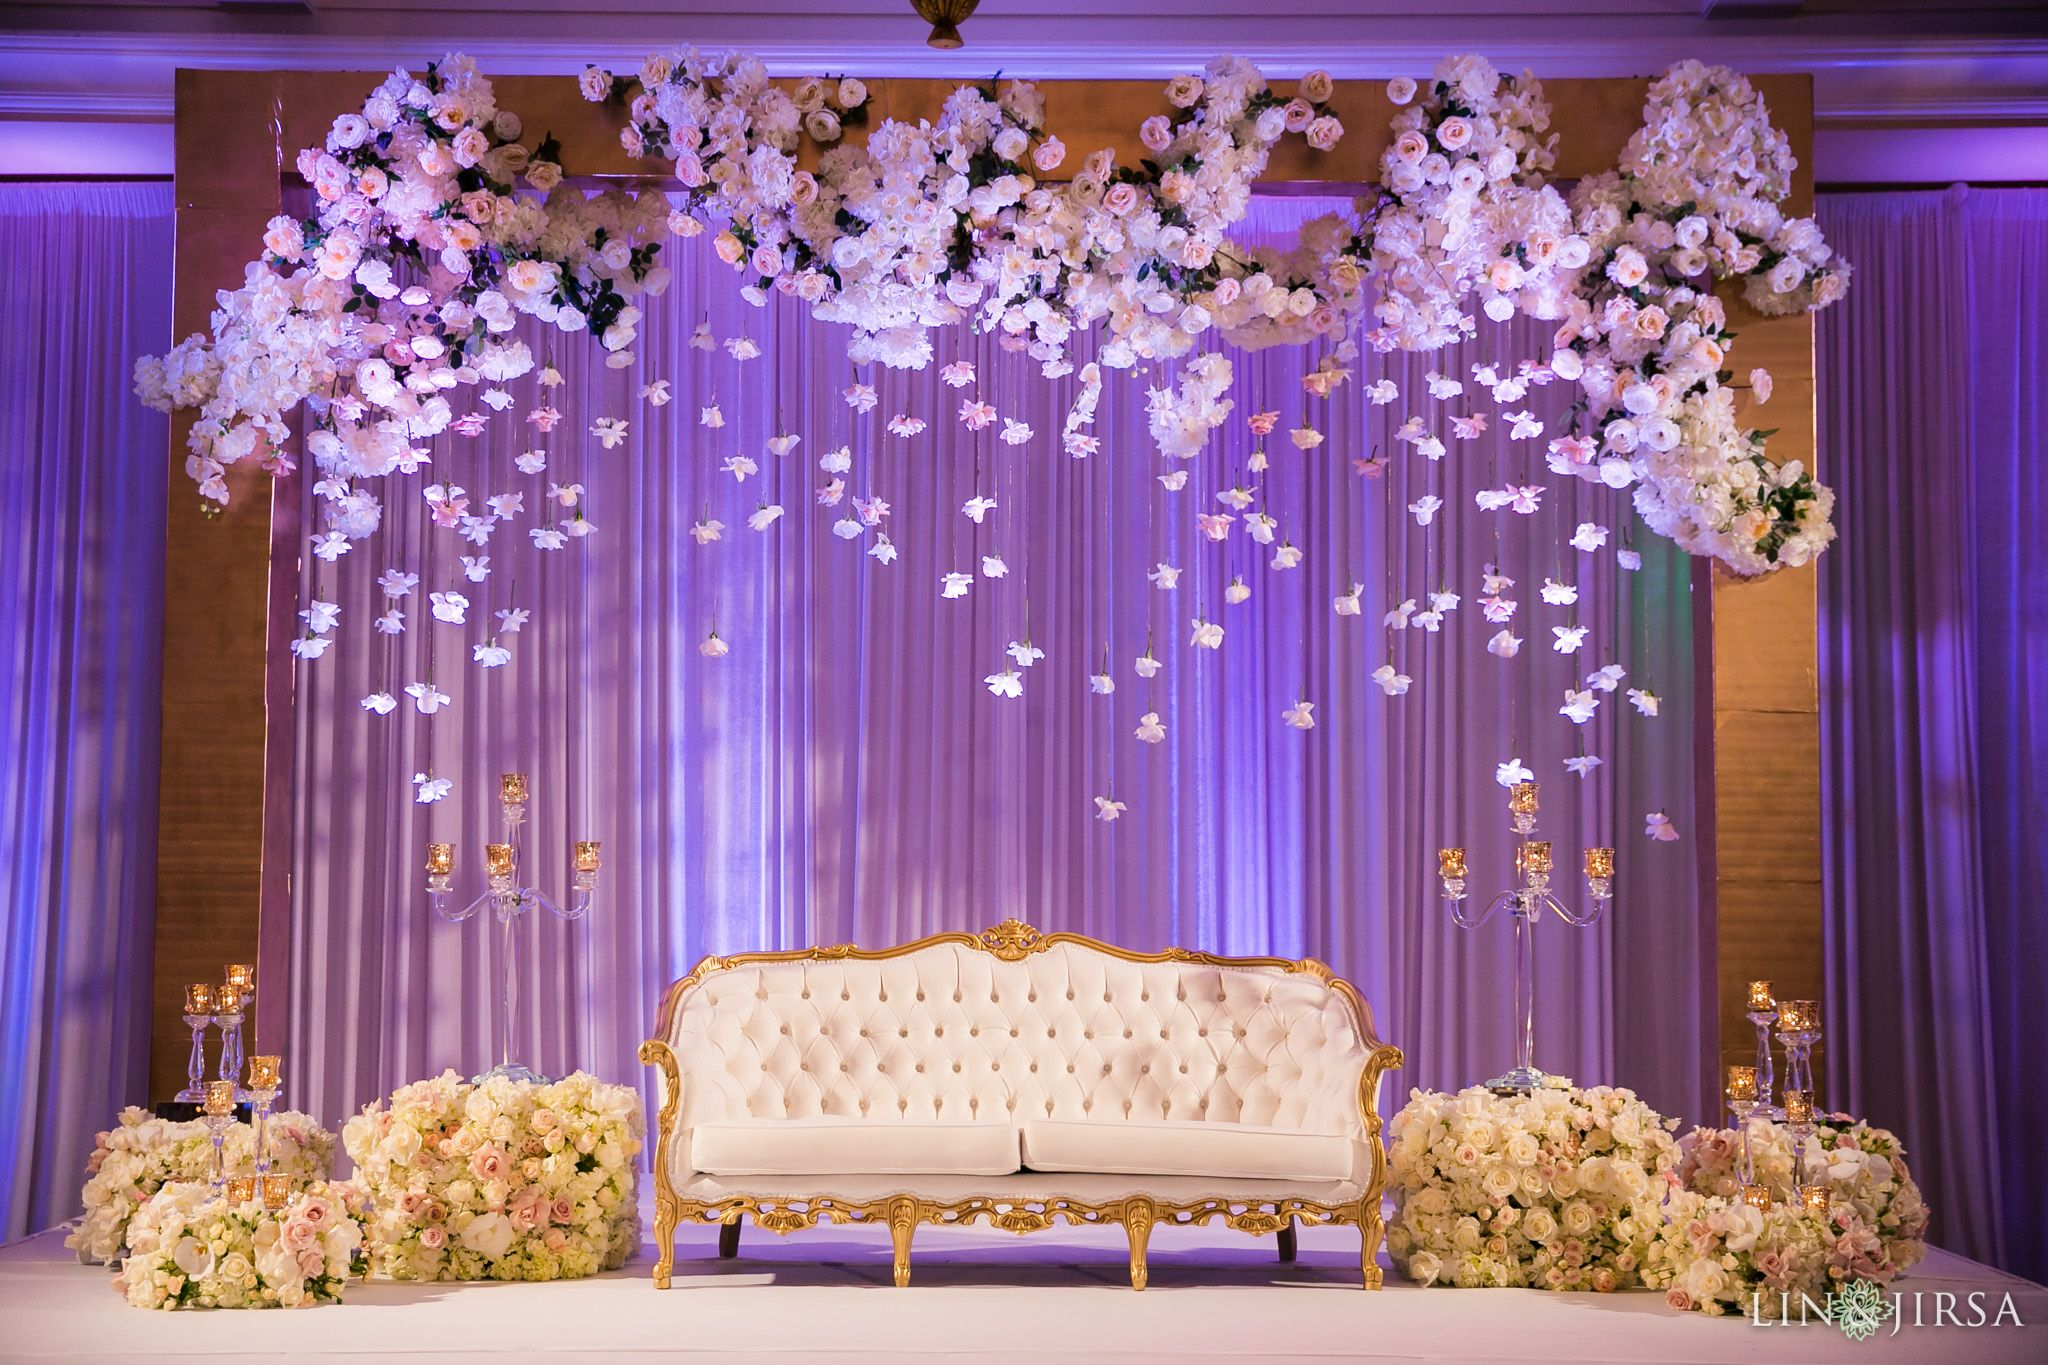 Lavender dreams! Enchanting lavender drapes form the backdrop of this  lovely and refre… | Wedding stage decorations, Wedding stage design, Wedding  design decoration